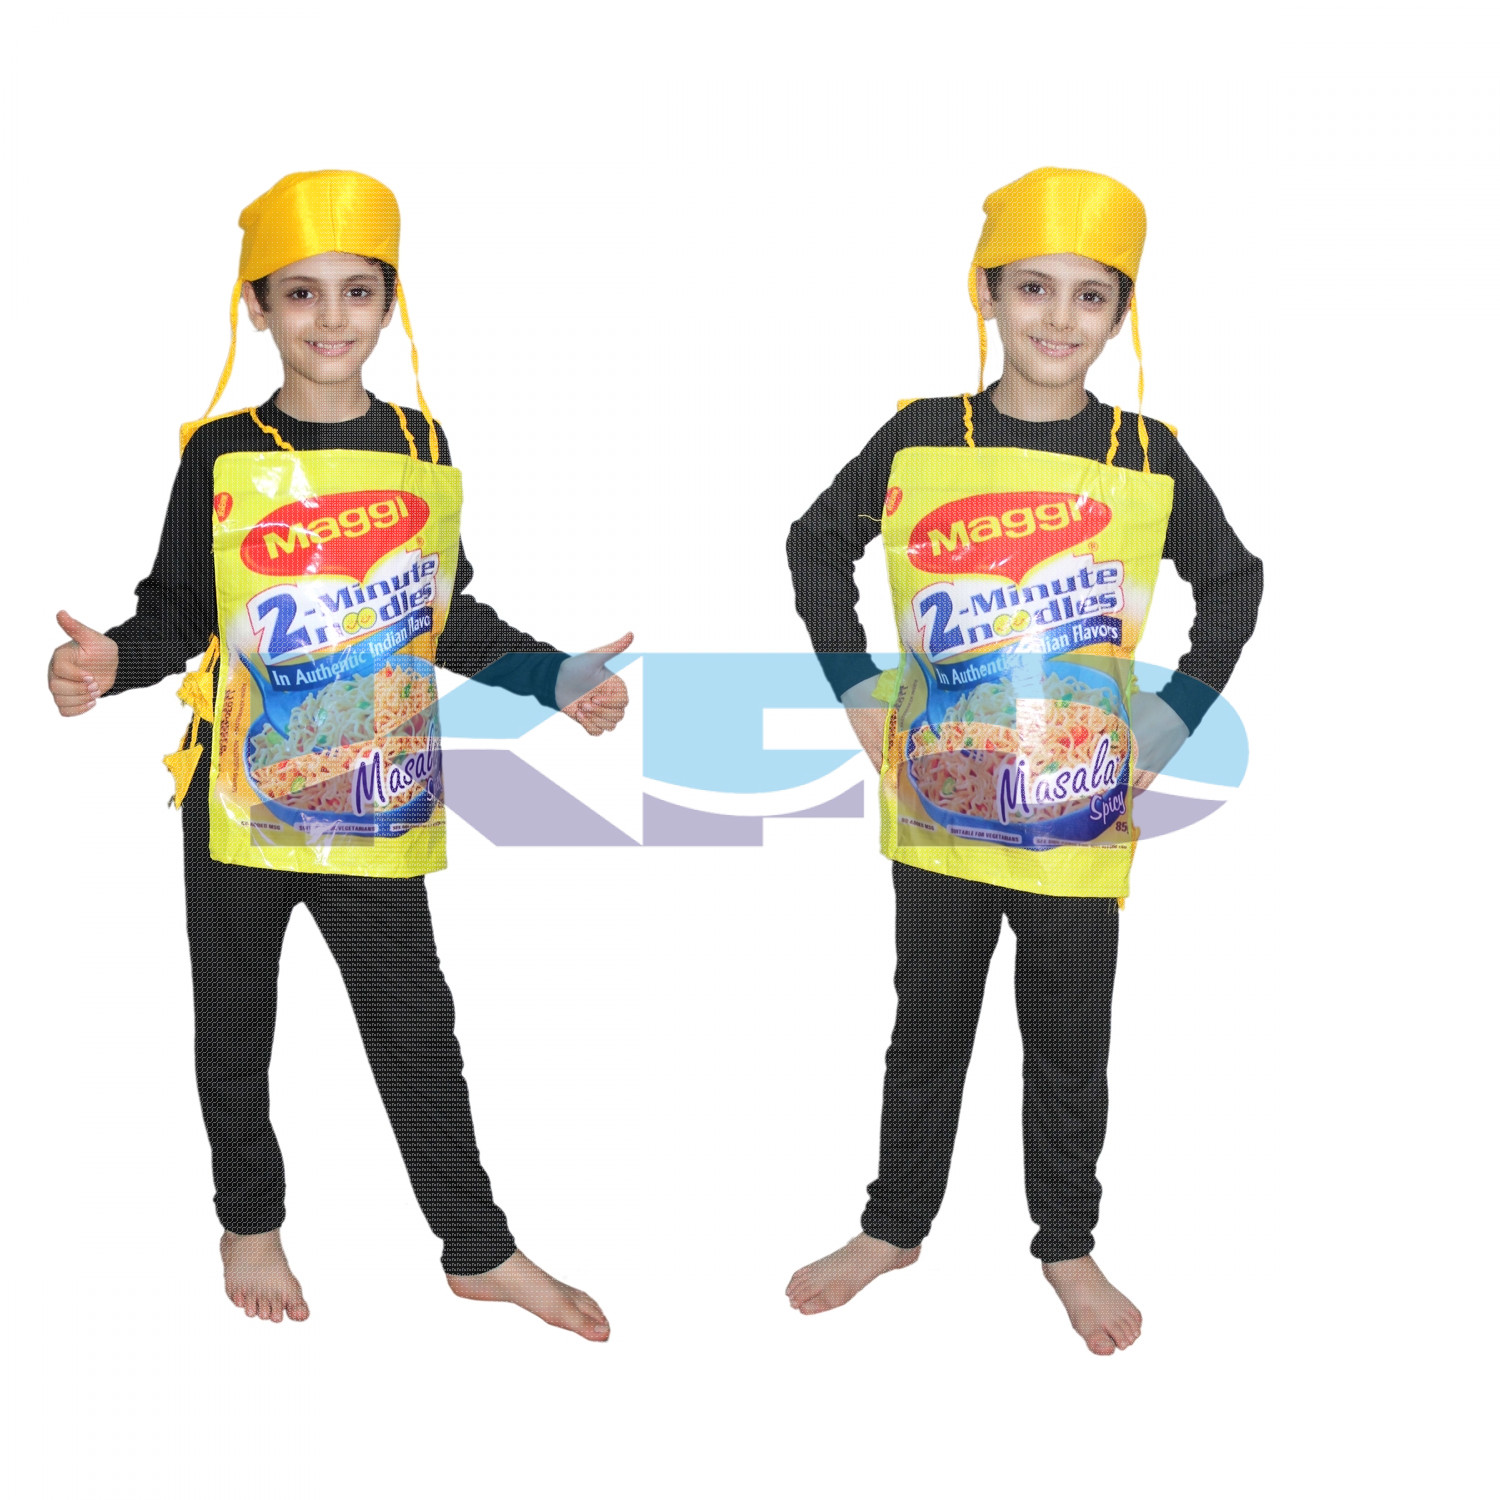 Maggi fancy dress for kids,Object Costume for School Annual function/Theme Party/Competition/Stage Shows Dress